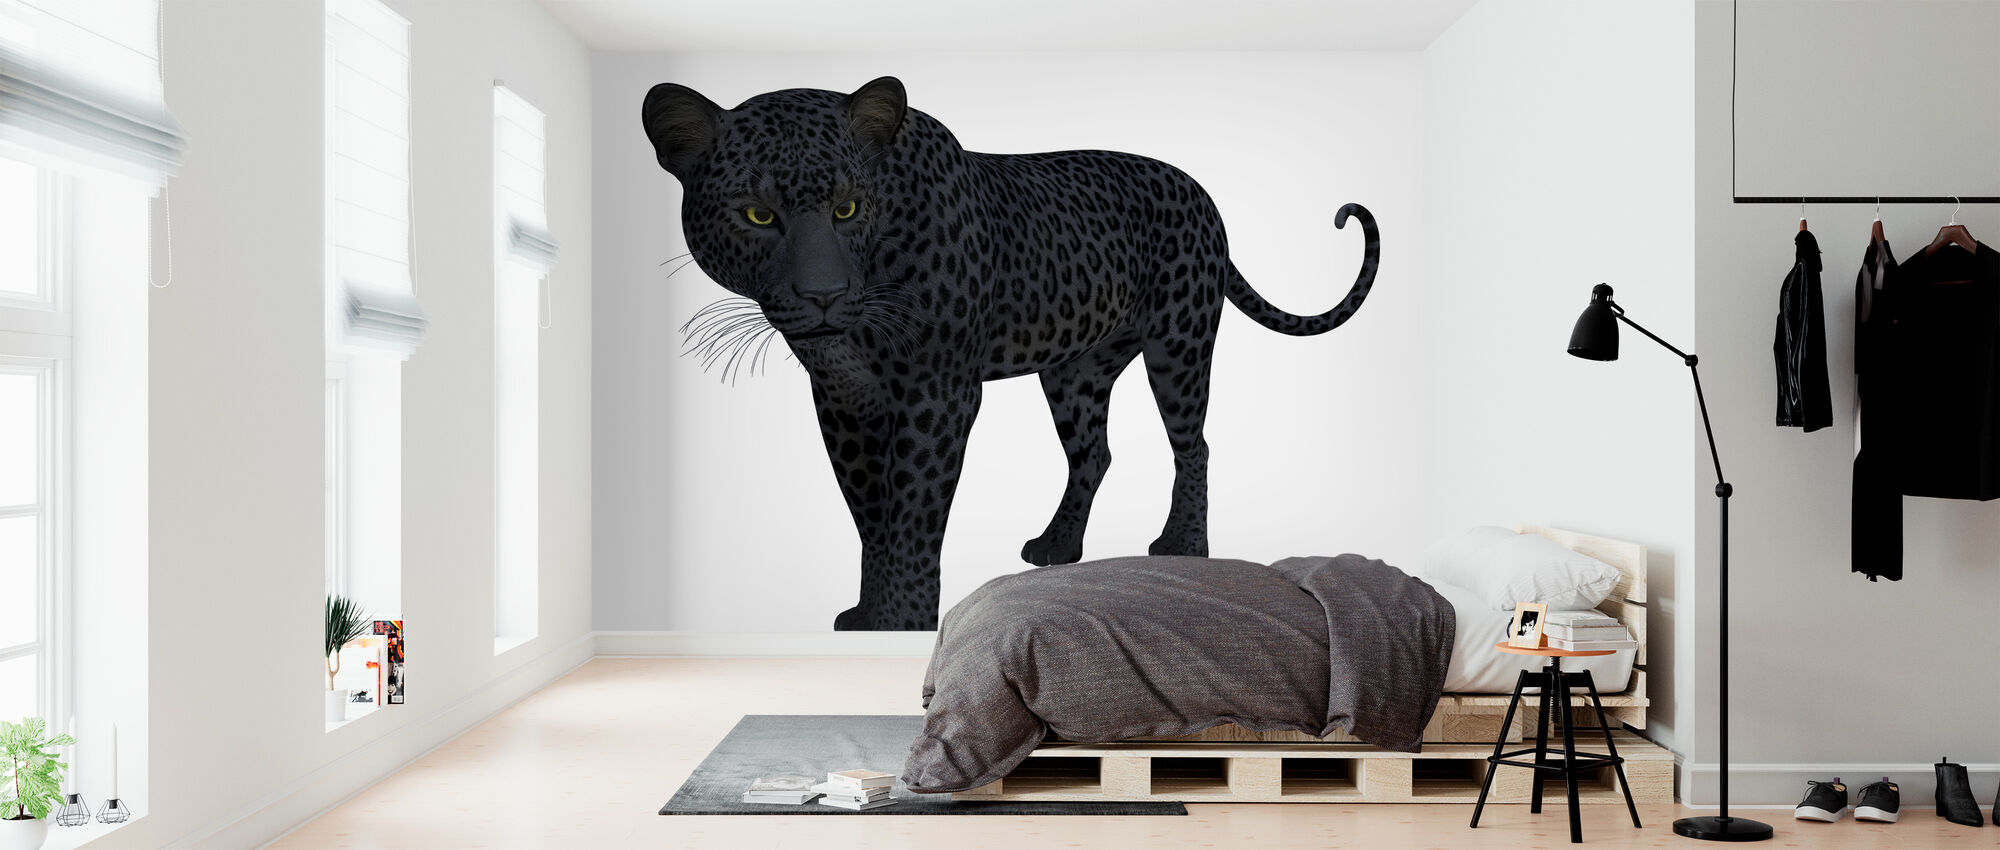 Black Panther - Wallpaper - Bedroom